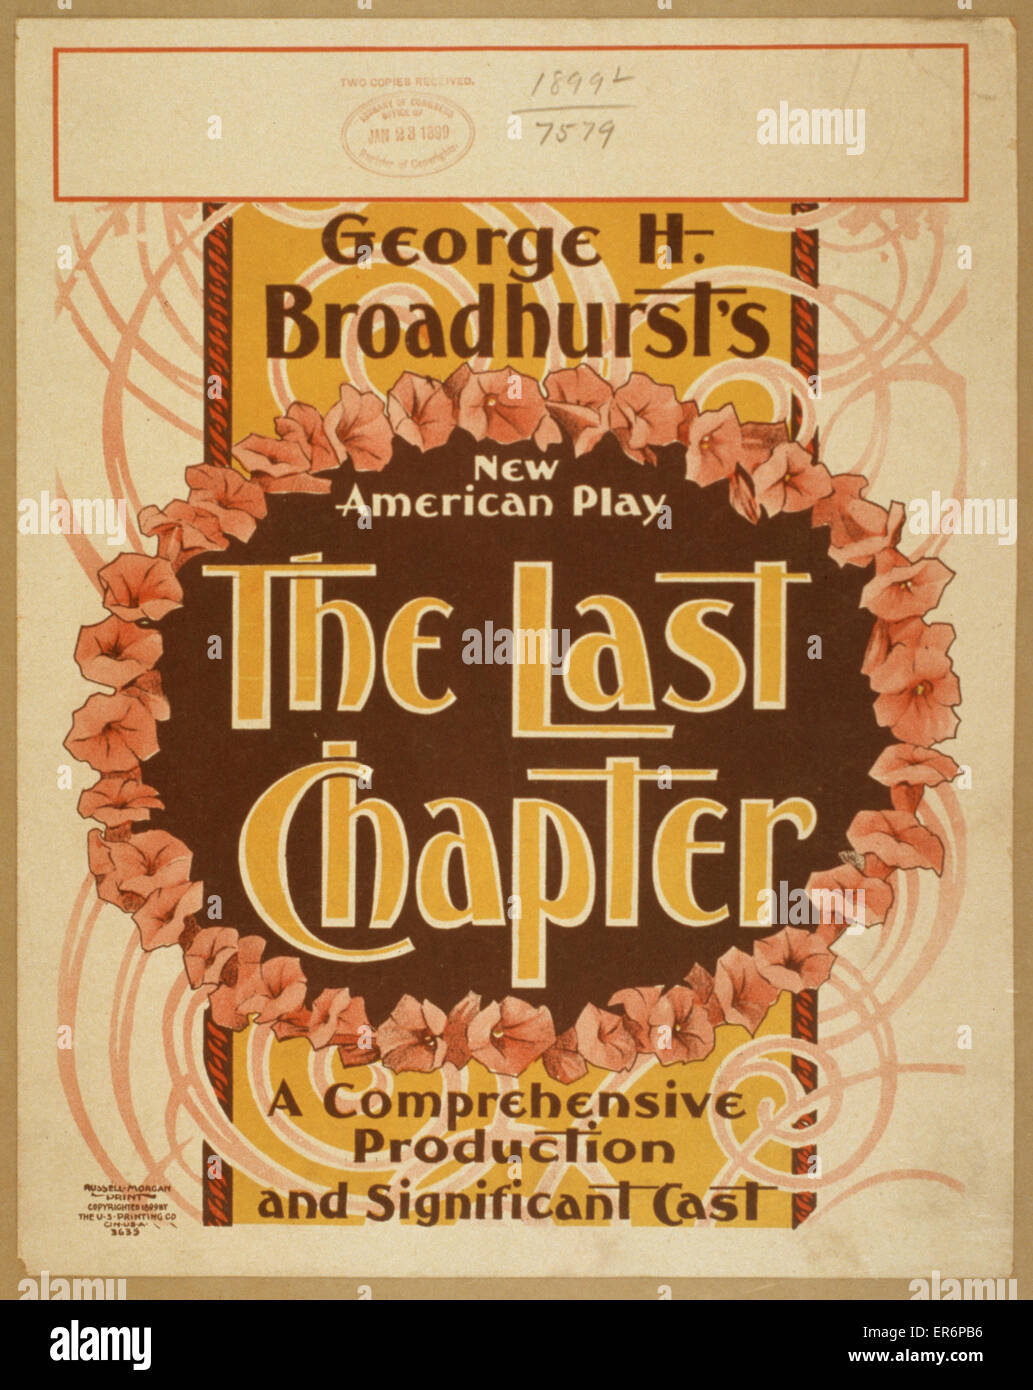 George H. Broadhurst's new American play, The last chapter a comprehensive production and significant cast. - Stock Image